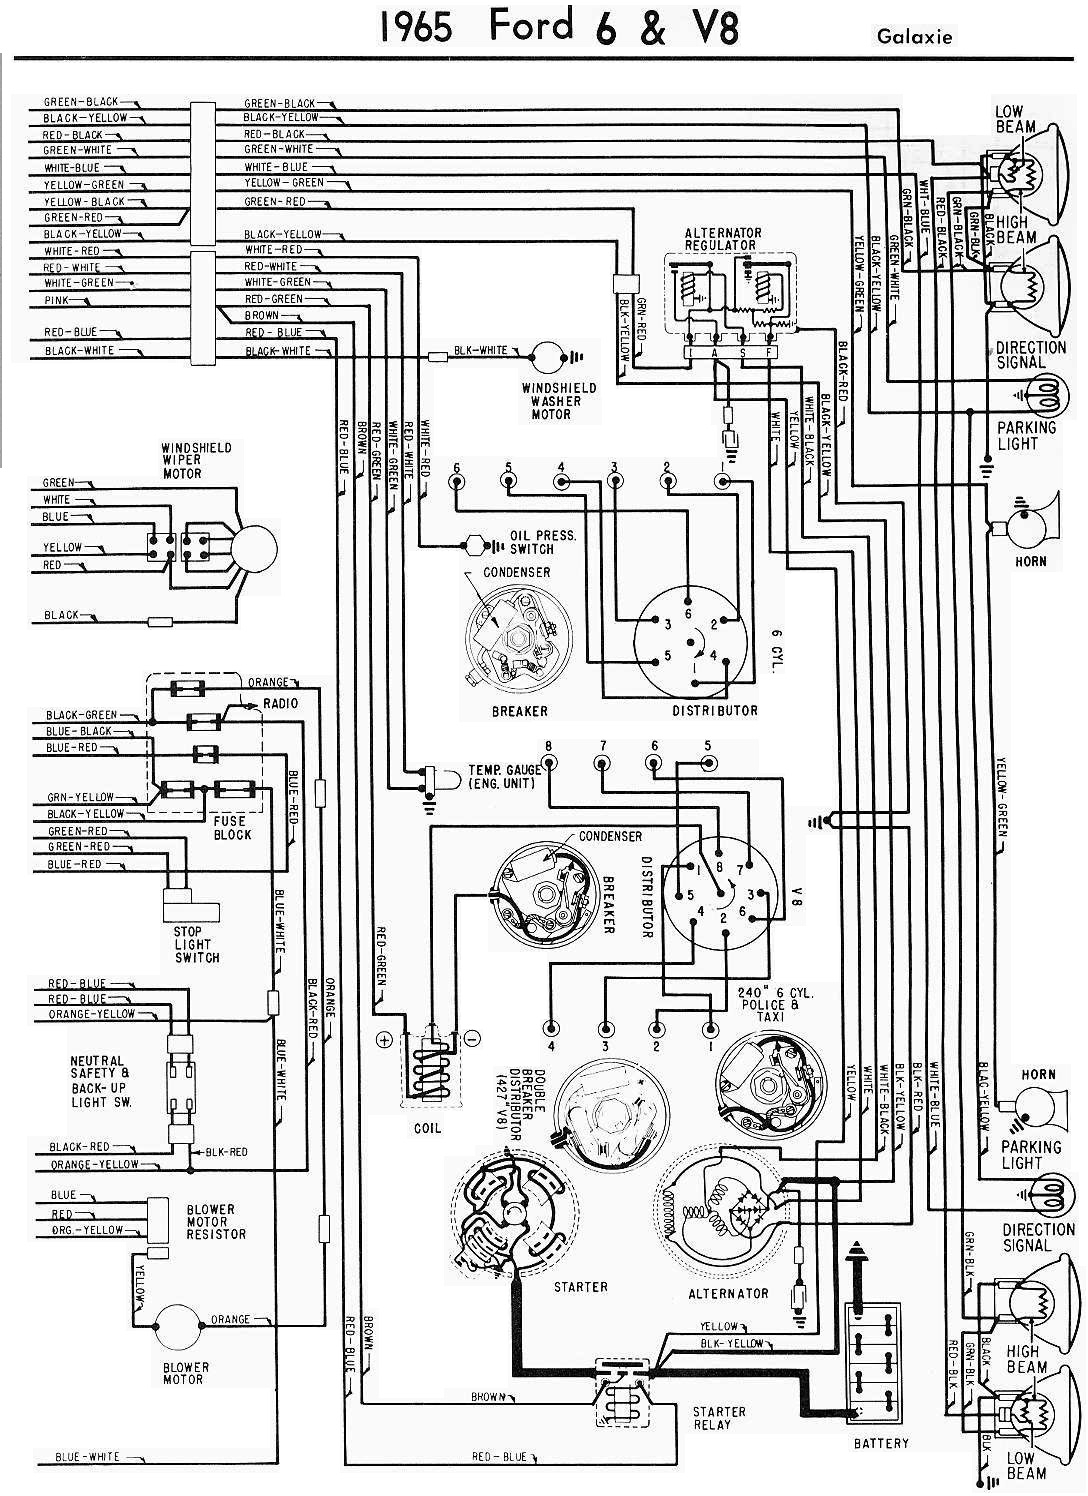 File 1968 Shelby GT350 engine moreover 1965 Ford F100 Wiring Diagram 1967 Schematic Diagrams further 1967 Ford Fairlane Wiring Diagram Best Of 57 65 Ford Wiring Diagrams in addition 1965 Ford Galaxie  plete Electrical 30 as well European Schematics With Electrical Schematic Symbols European. on 1967 fairlane wiring diagram